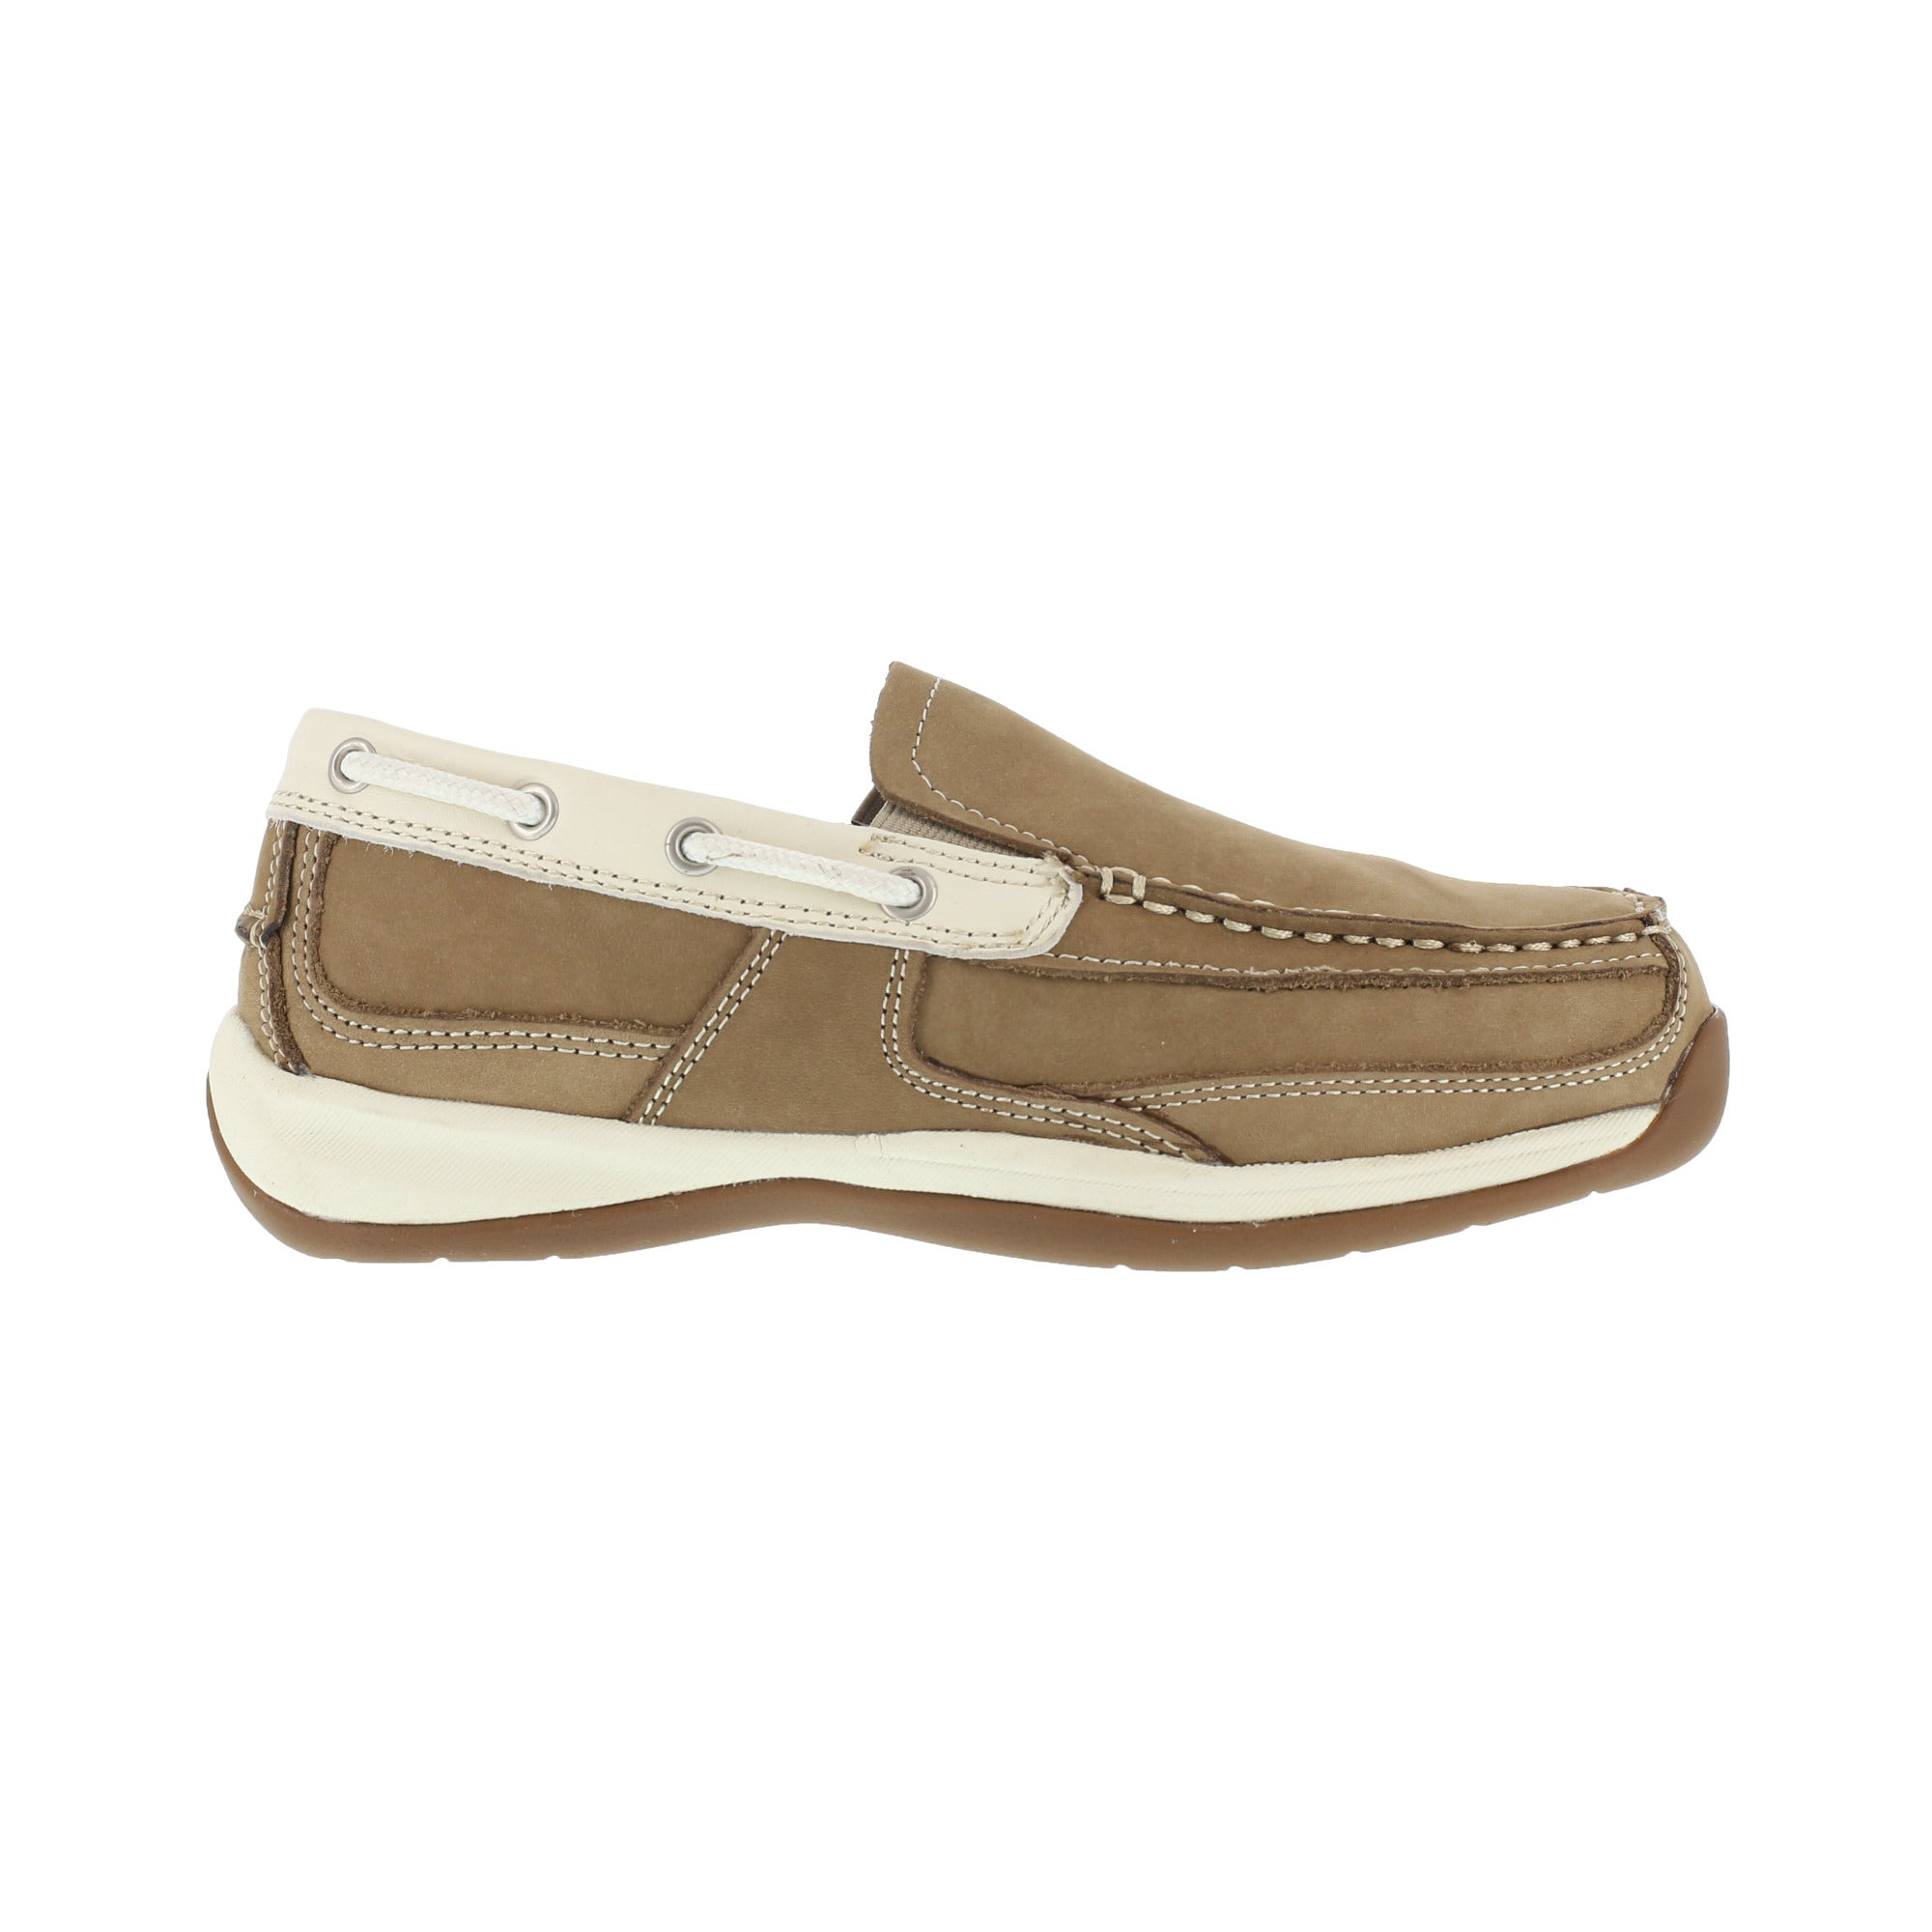 Rockport Womens Tan Leather Casual Boat